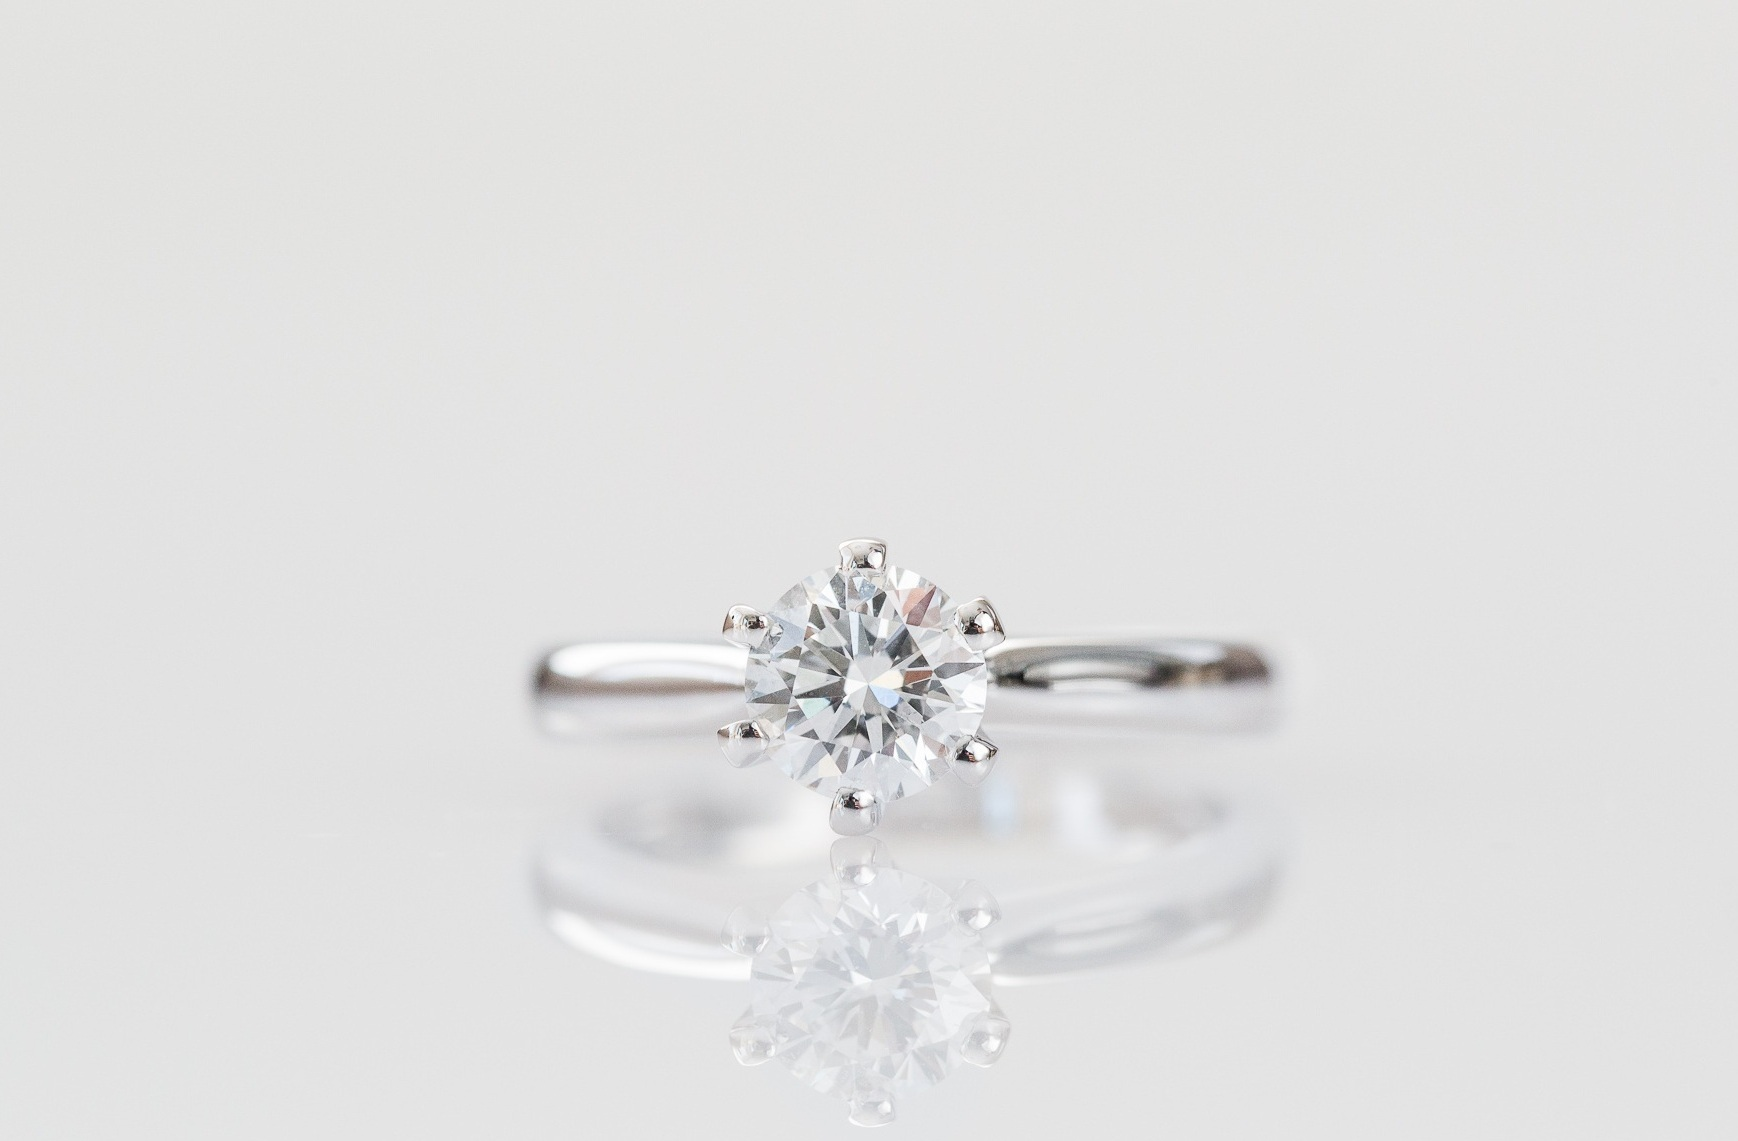 Six claw round diamond engagement ring.